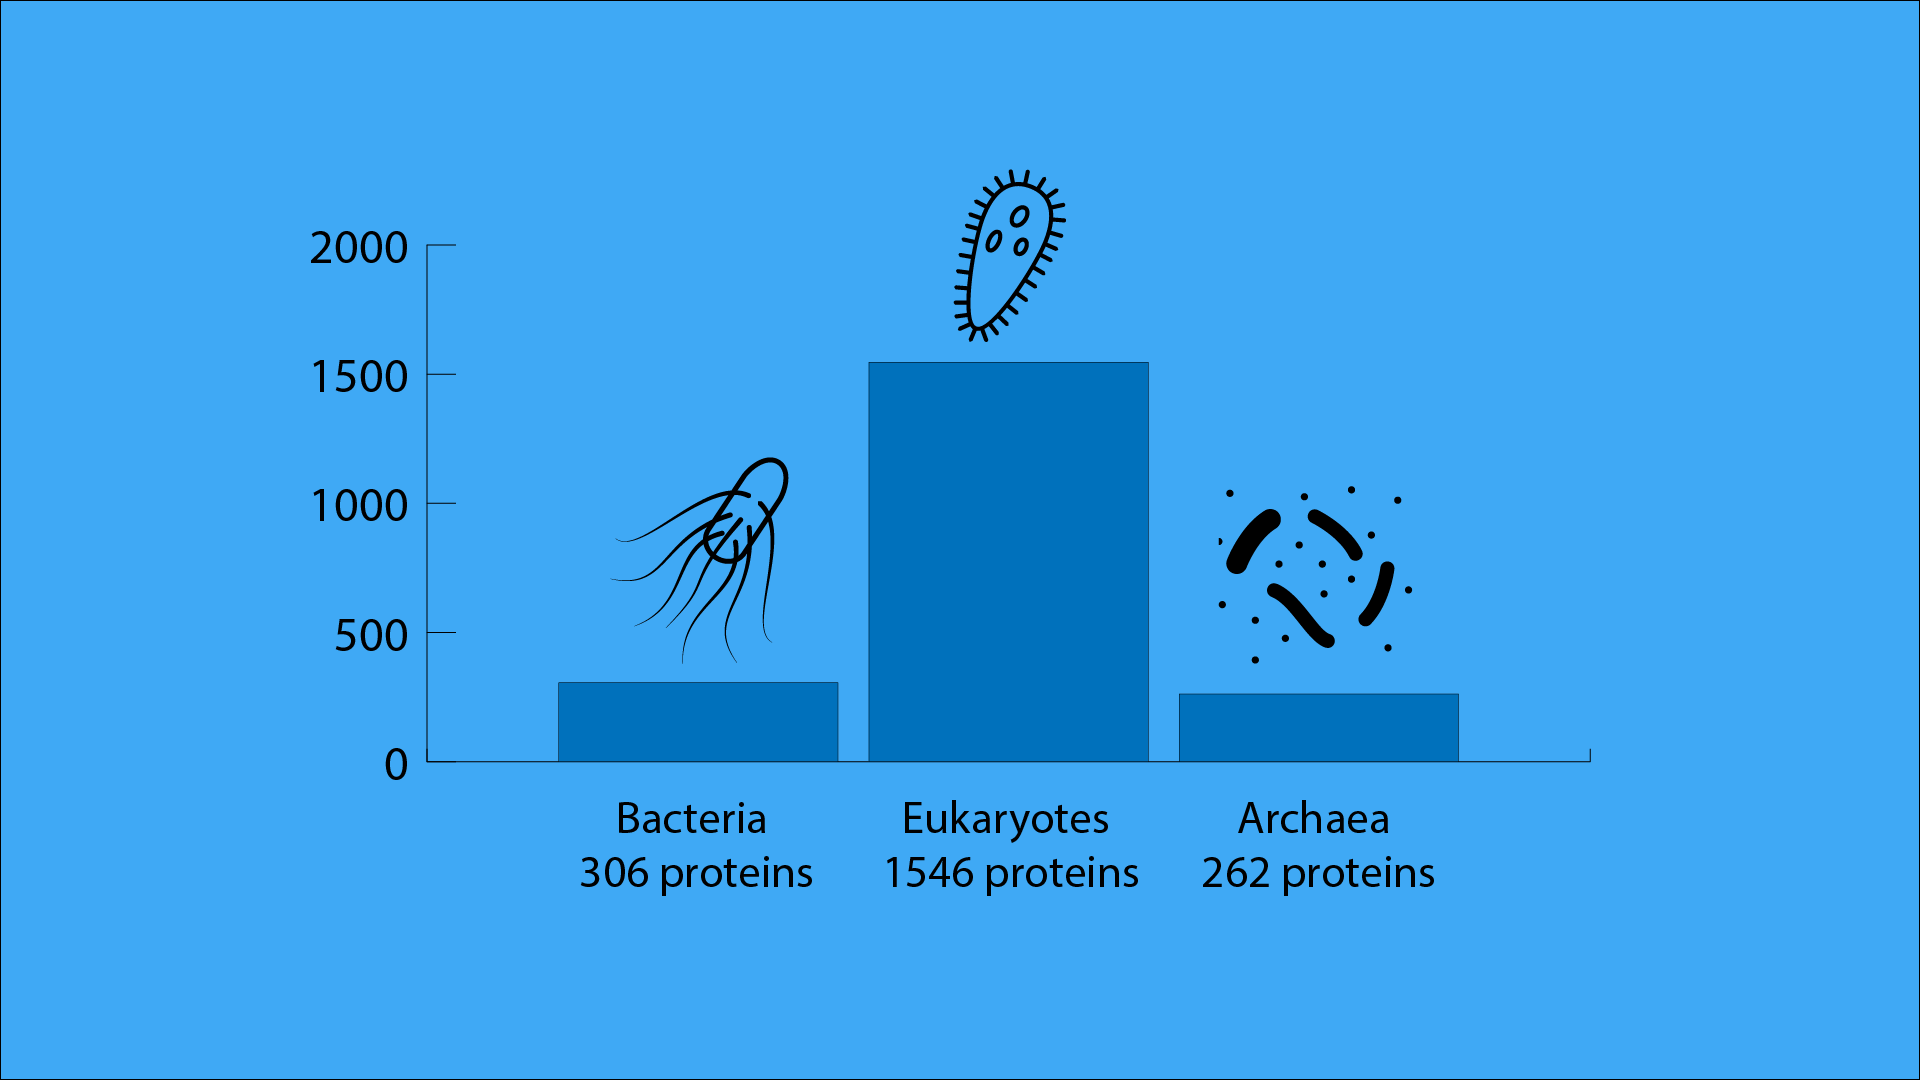 For Bacteria 306 proteins, for eukaryotes 1546 proteins and for archaea 262 proteins contribute to 90 percent of the total protein amount